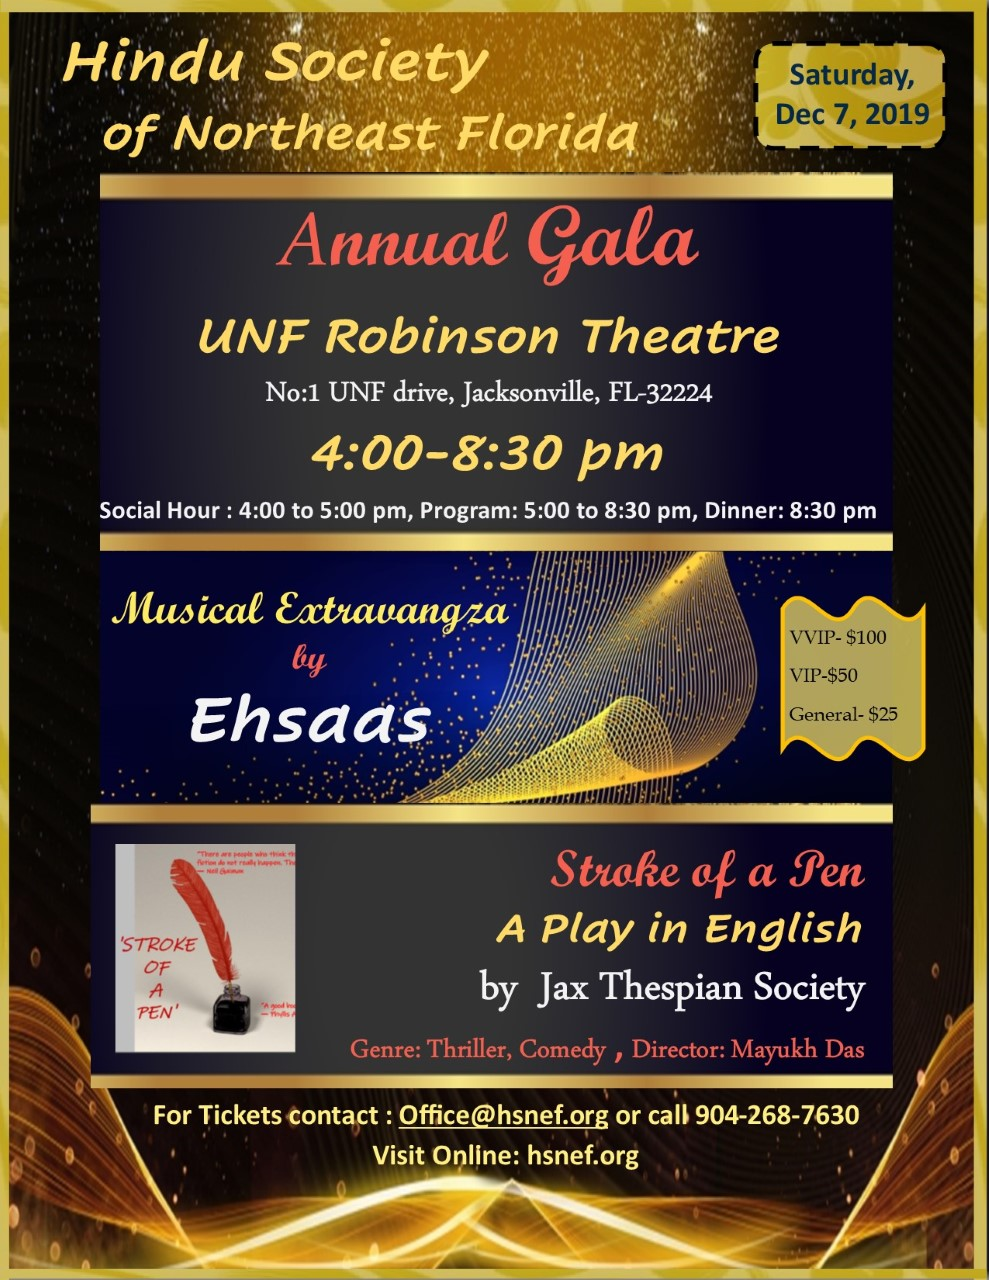 ANNUAL BANQUET GALA 2019 HSNEF SAt Dec 3 - Buy Tickets Online here. For a Blast from the Past! Saturday December 2 2017